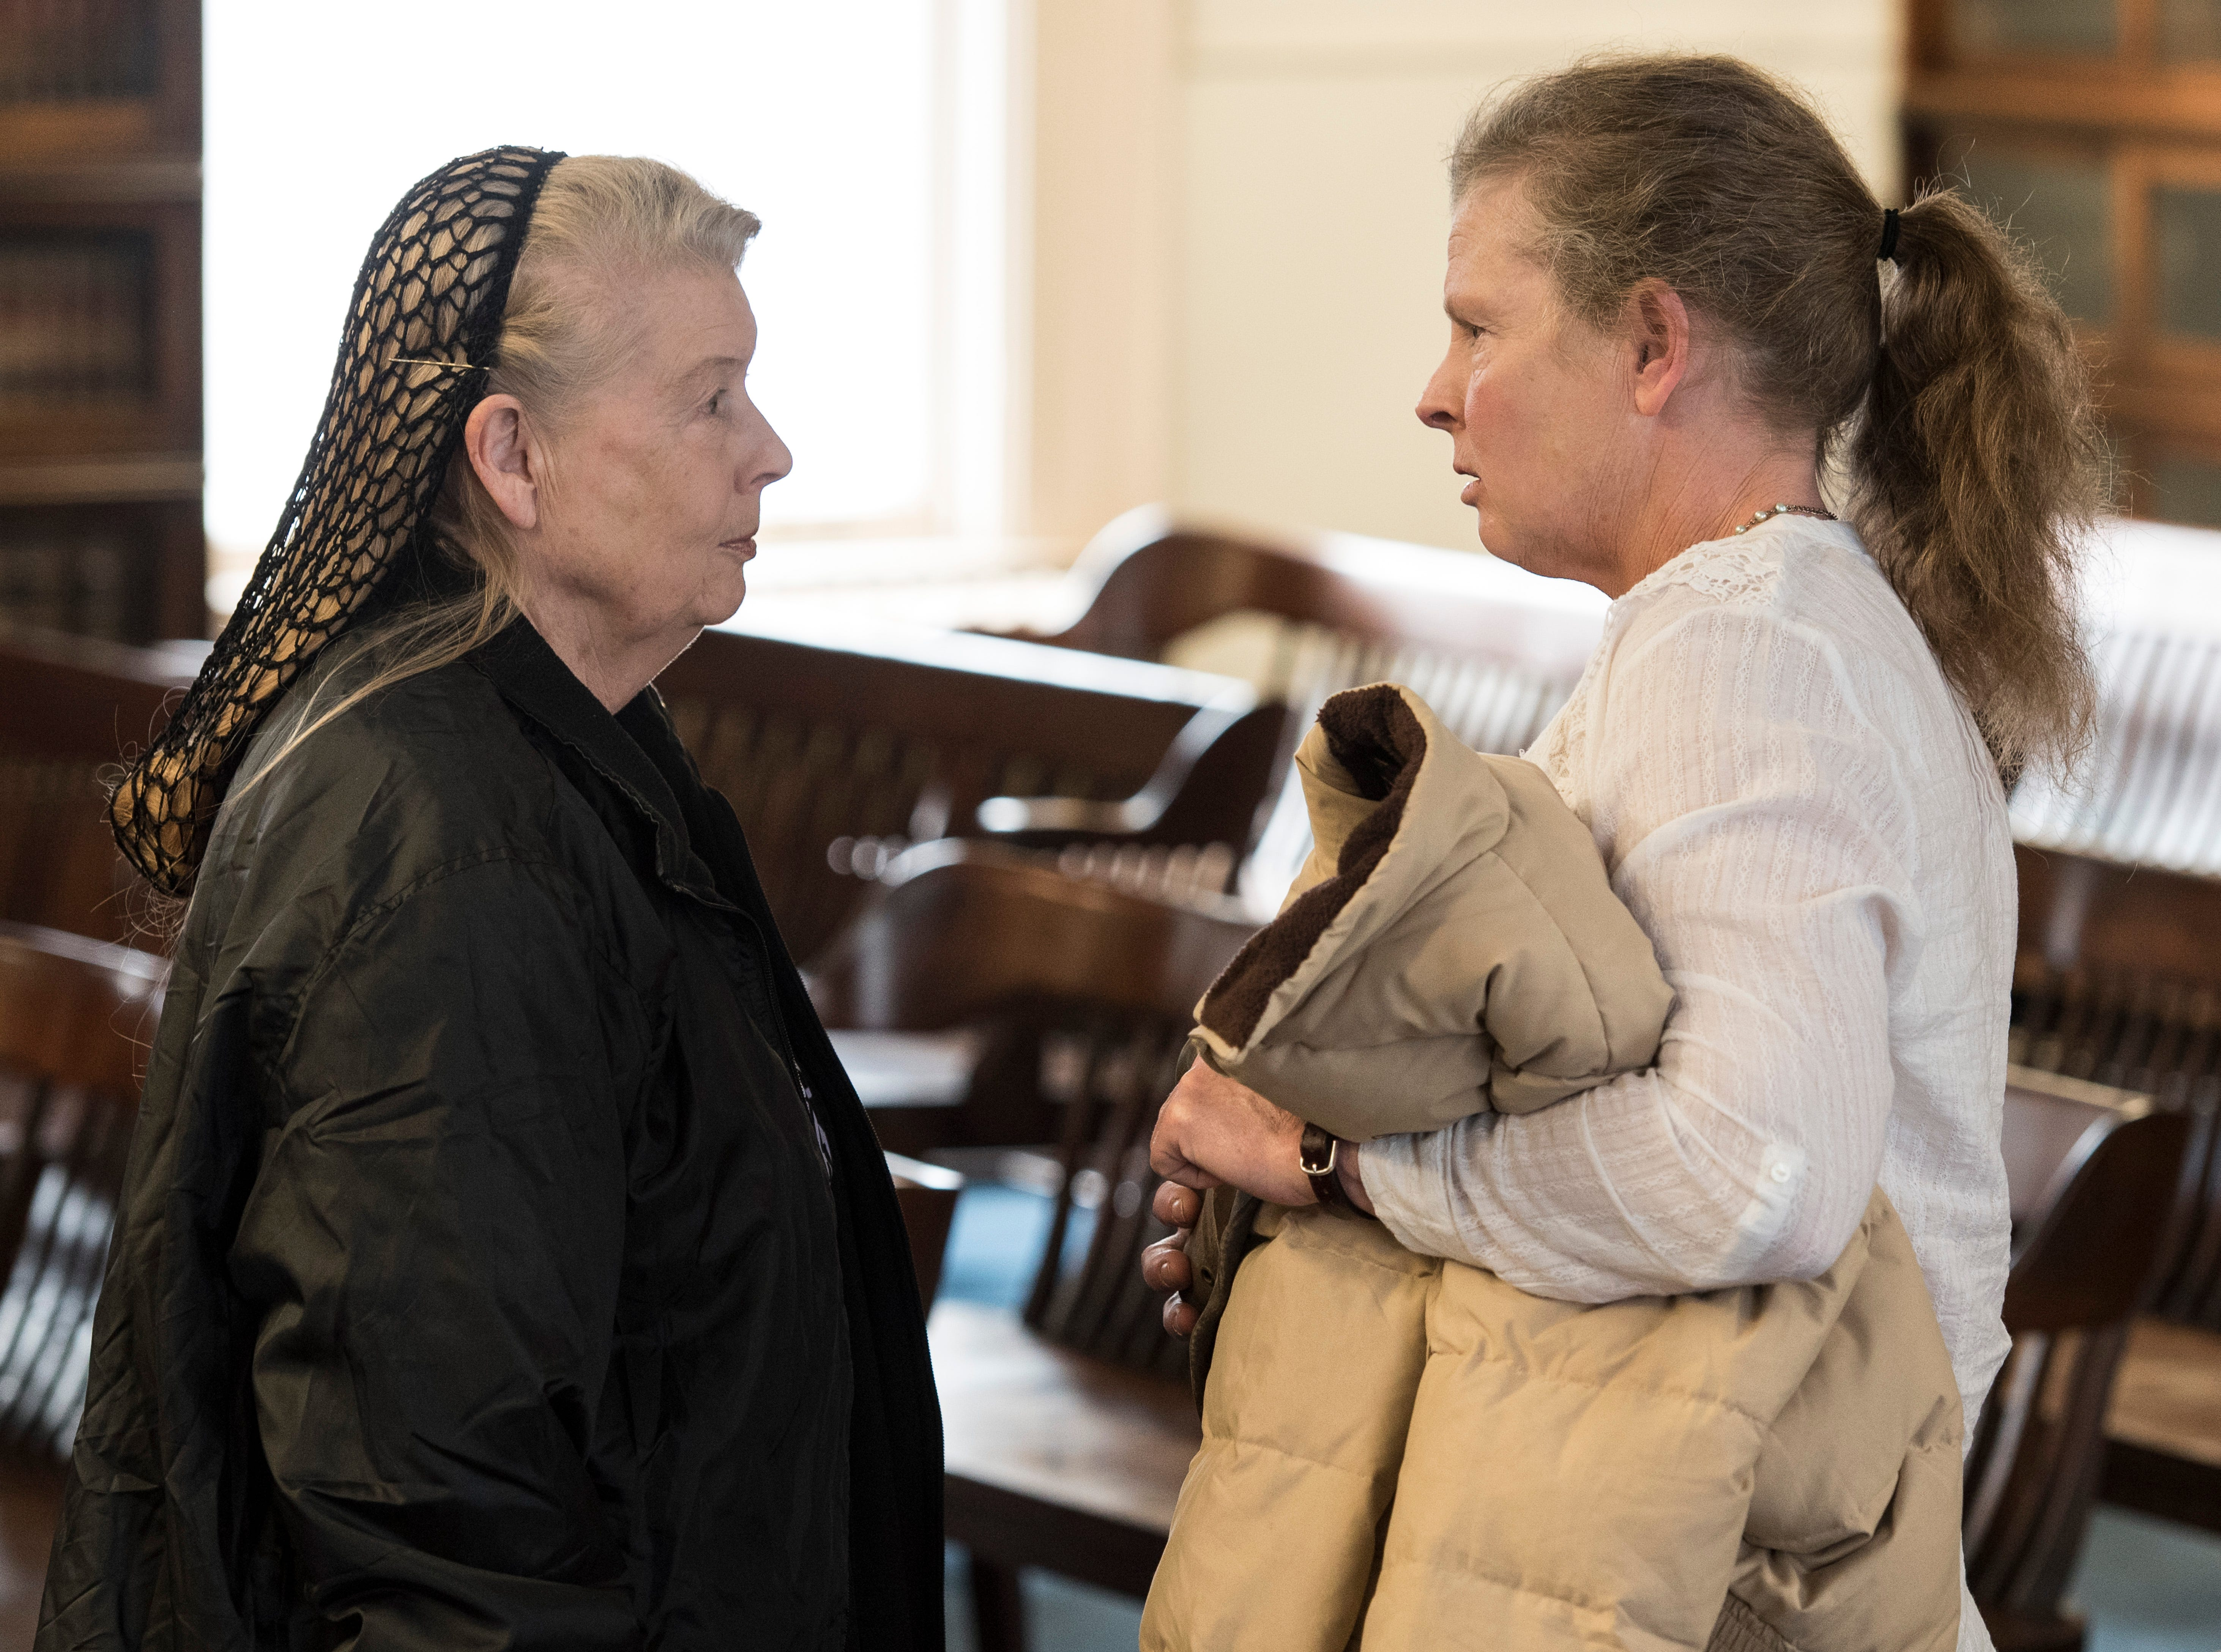 Fredericka Wagner, left, briefly talks with Robin Wagner after her pretrial hearing with Judge Randy Deering on March 28, 2019. Wagner is accused of perjury and obstructing justice for allegedly misleading investigators in the 2016 investigation concerning the murder of eight members of the Rhoden family.